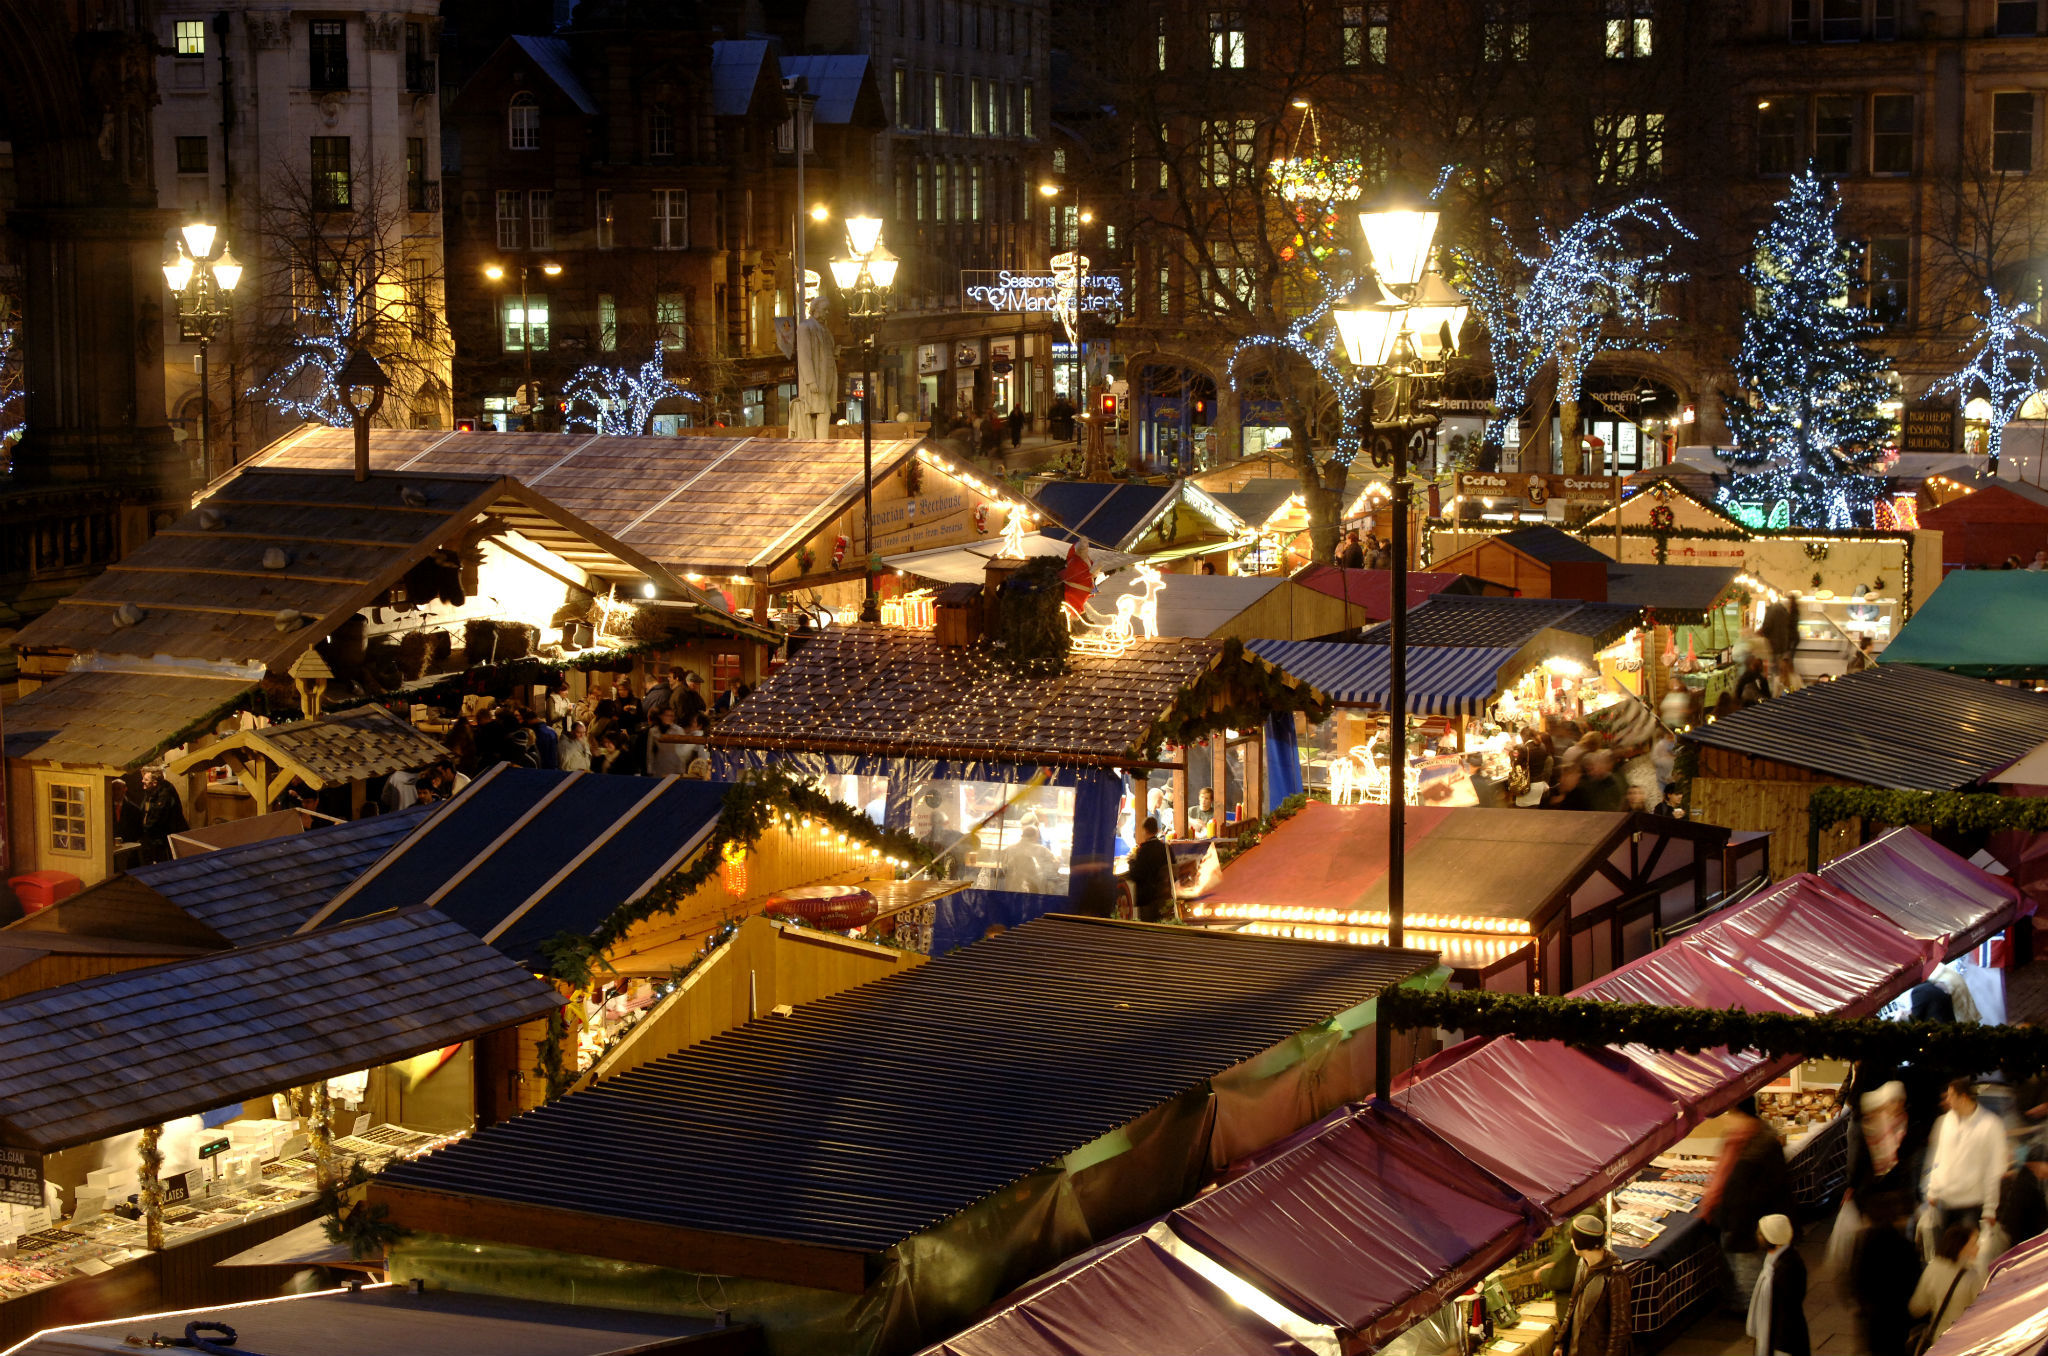 Manchester's winter events